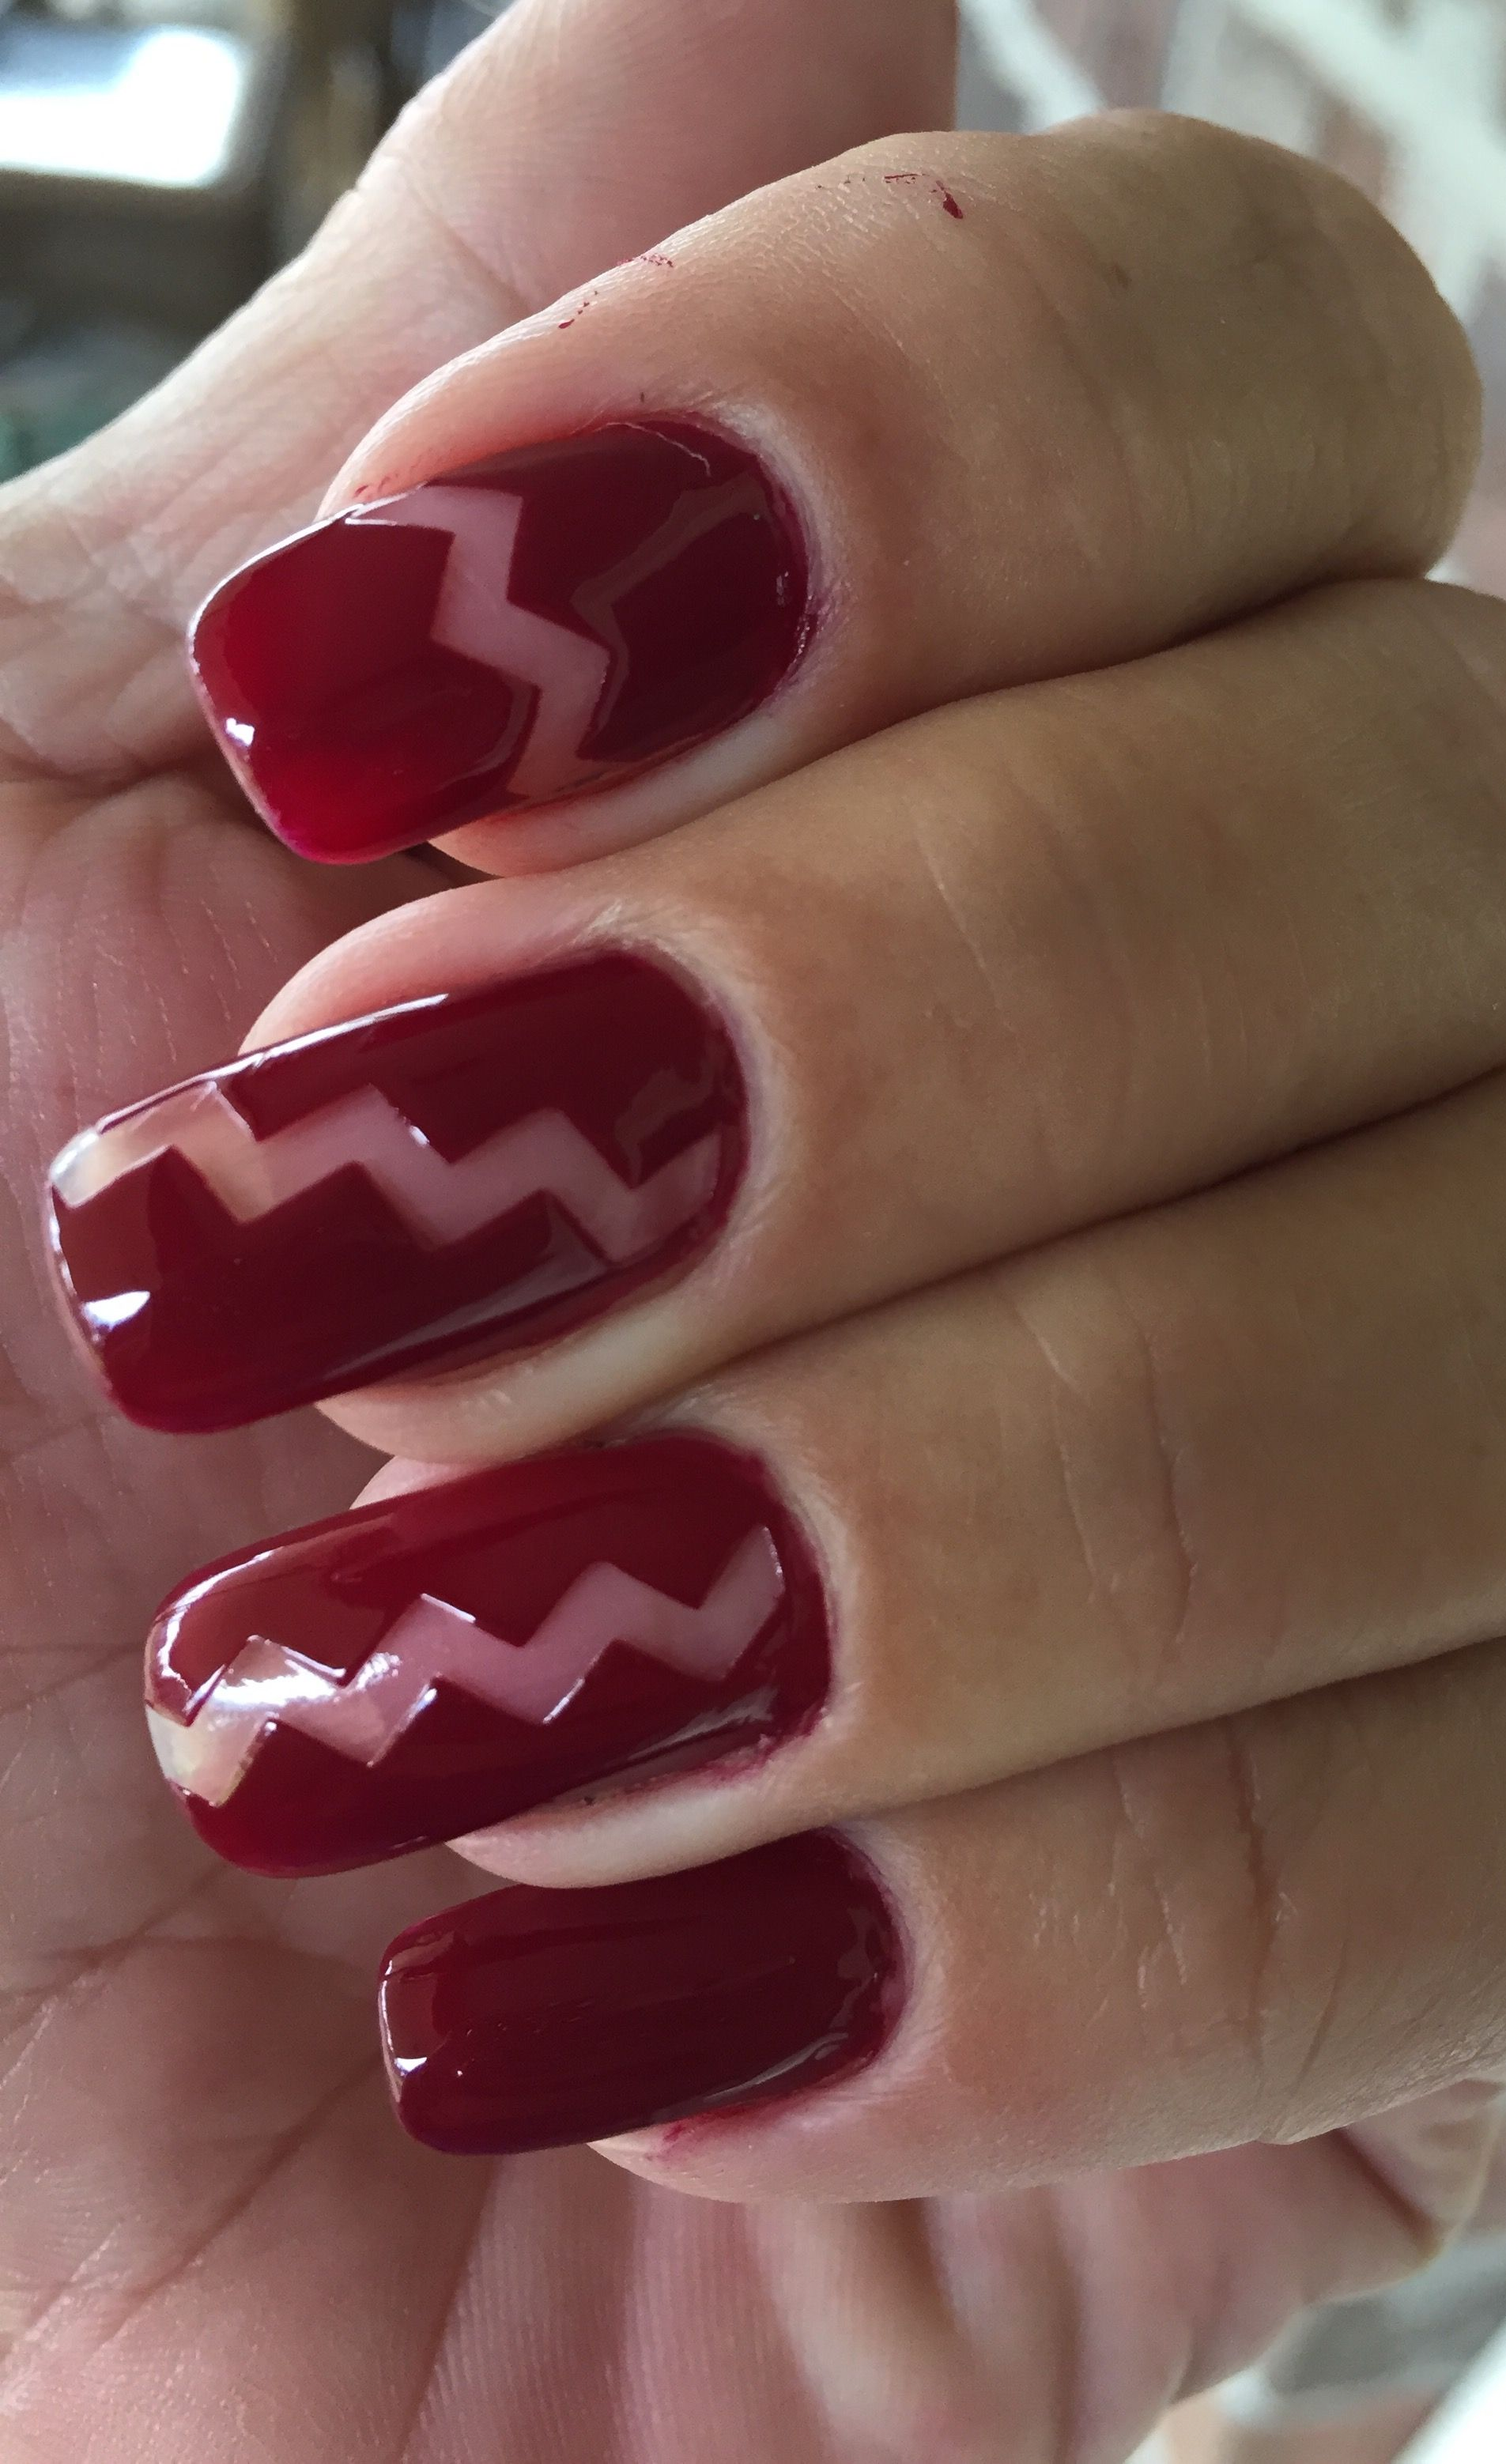 1st attempt at negative space nail art using #julep nail decals and ...